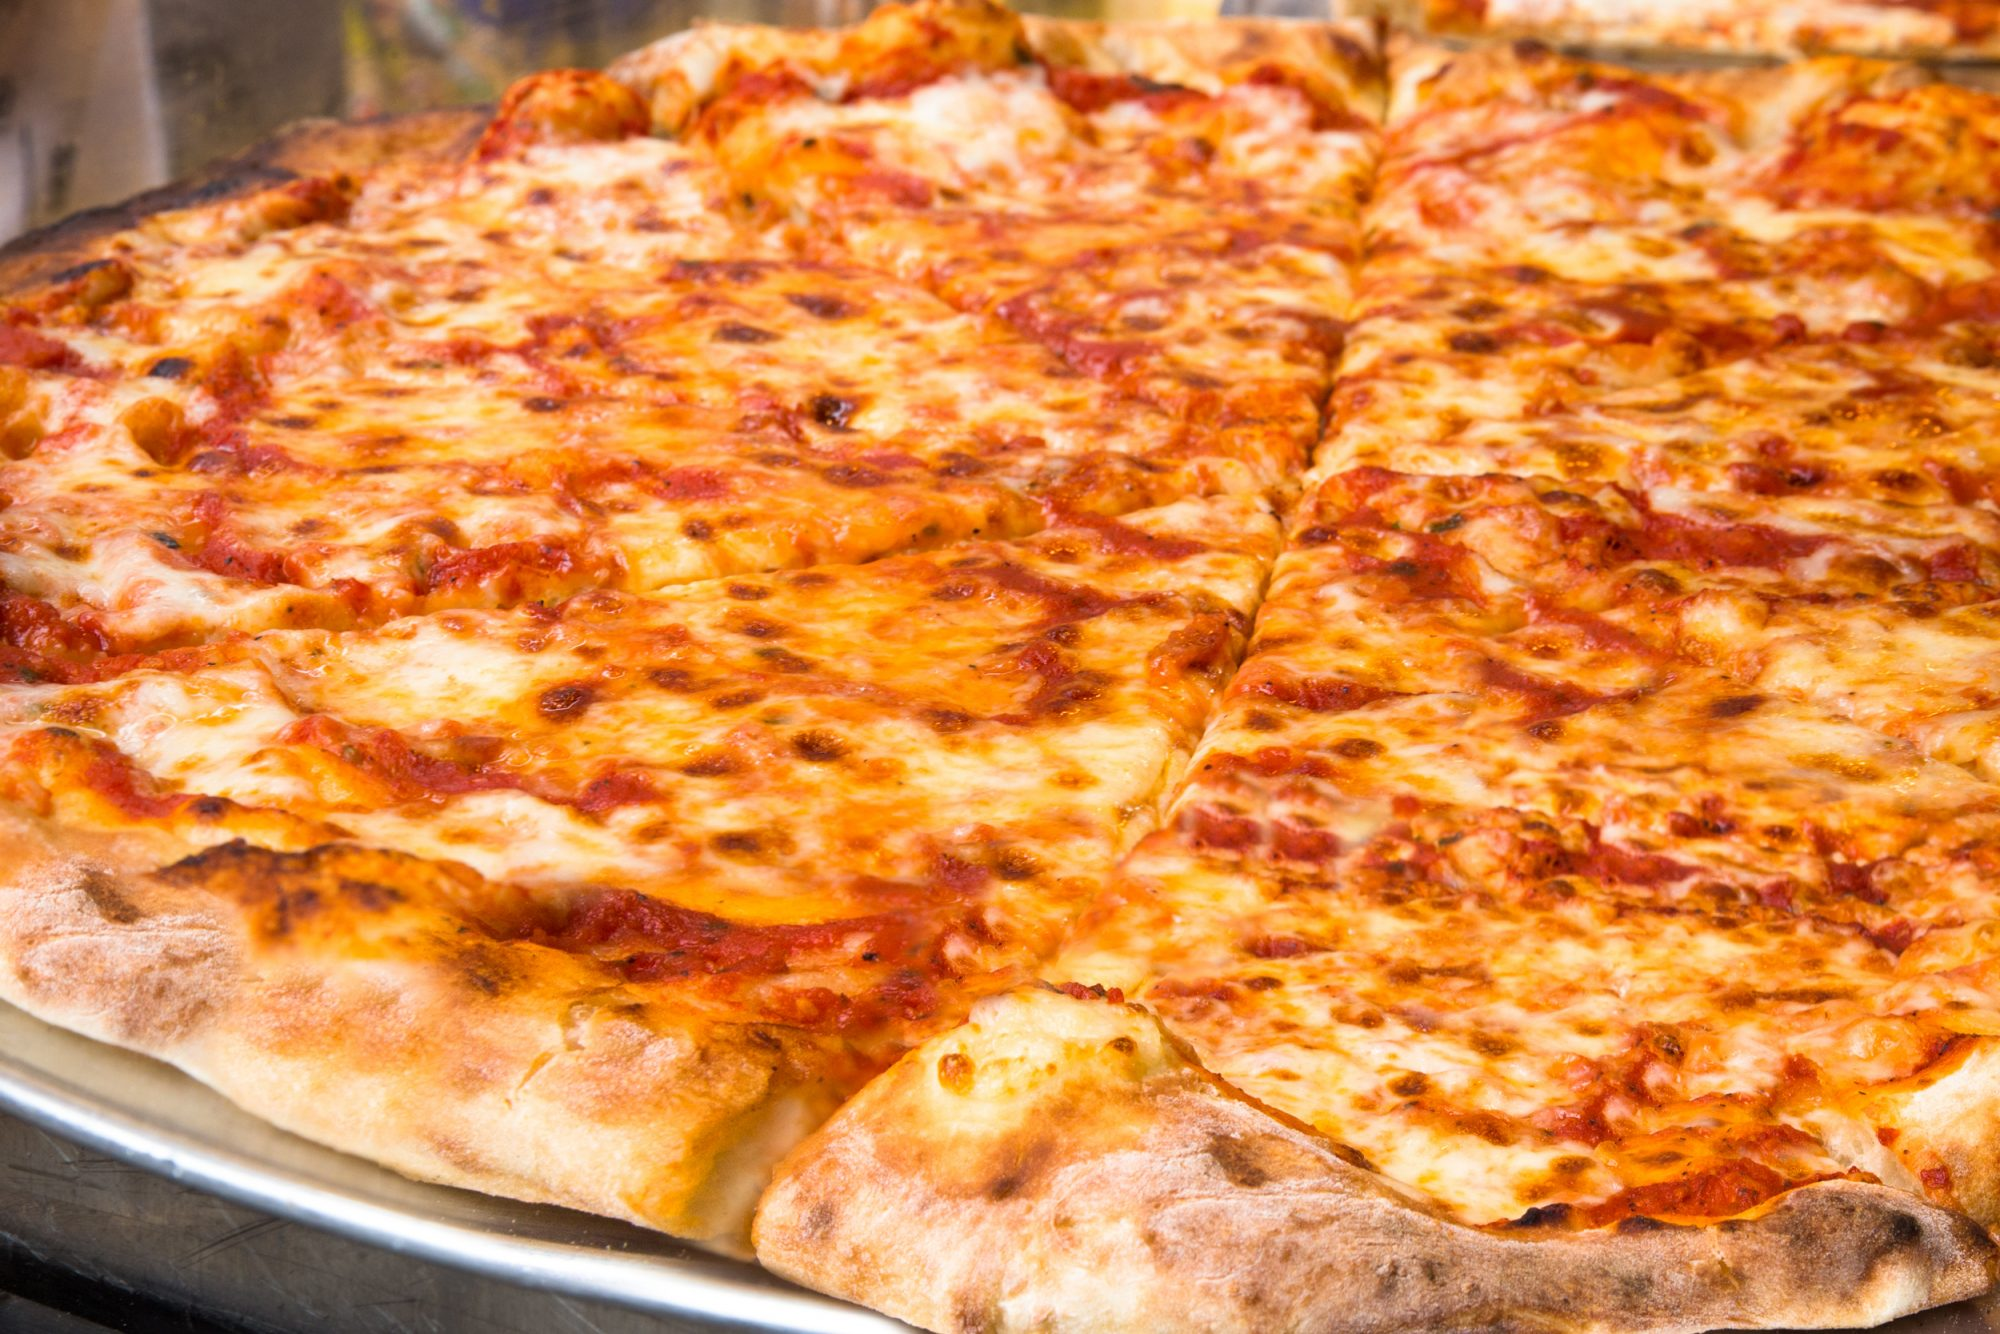 New York Pizza Flown to L.A.